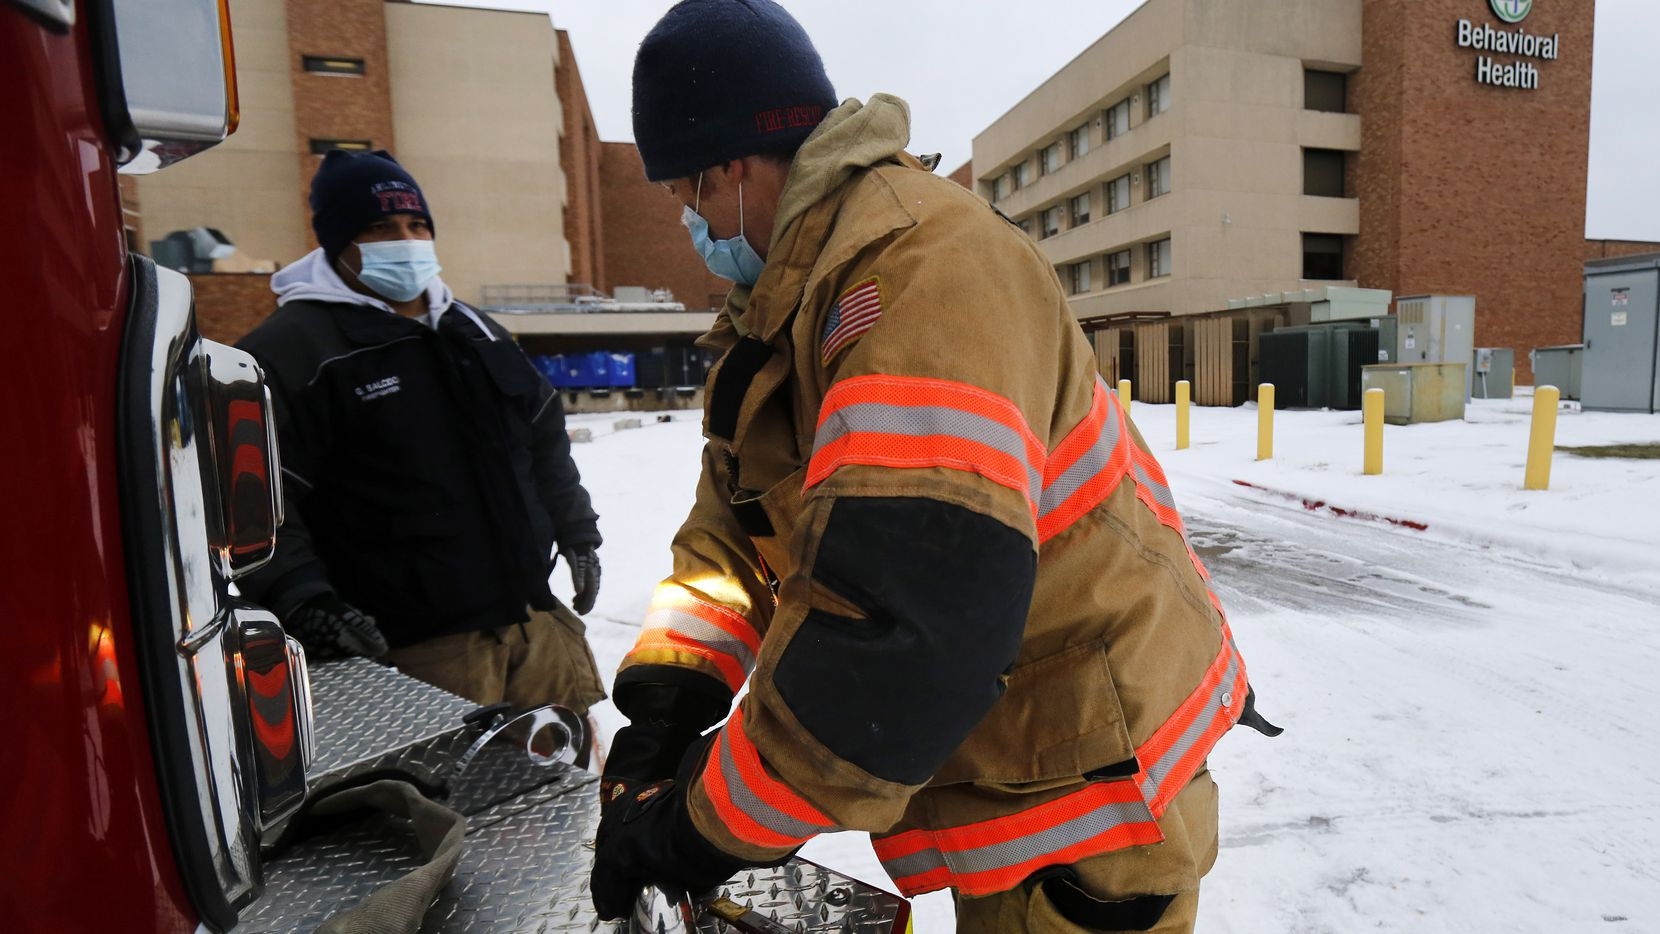 Arlington Fire Department Lt. Josh Jones hooks up a new water hose to Engine 4 in Arlington, Wednesday, February 17, 2021 to help add water pressure within Arlington Memorial Hospital.